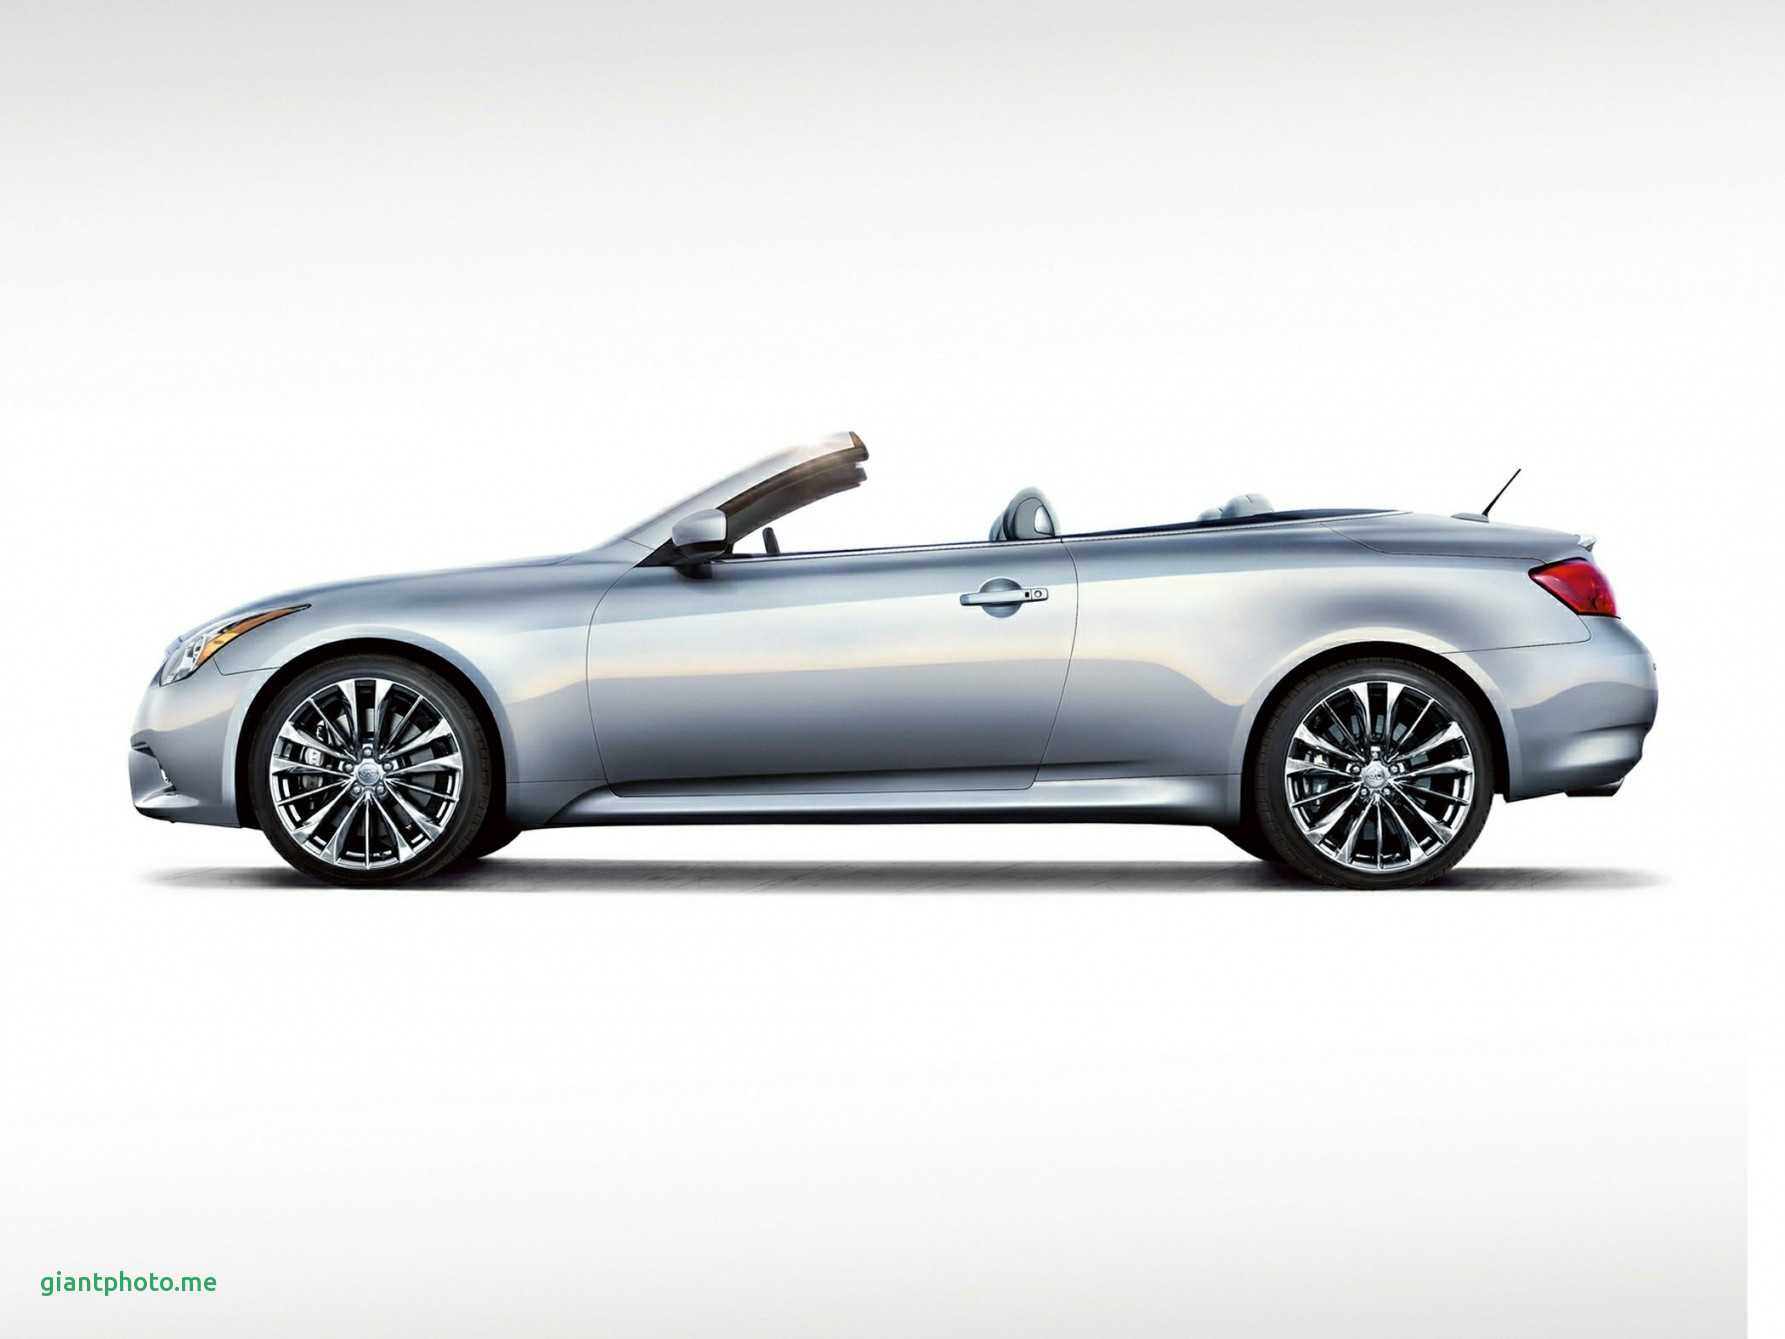 85 The 2019 Infiniti Q60 Coupe Convertible Concept